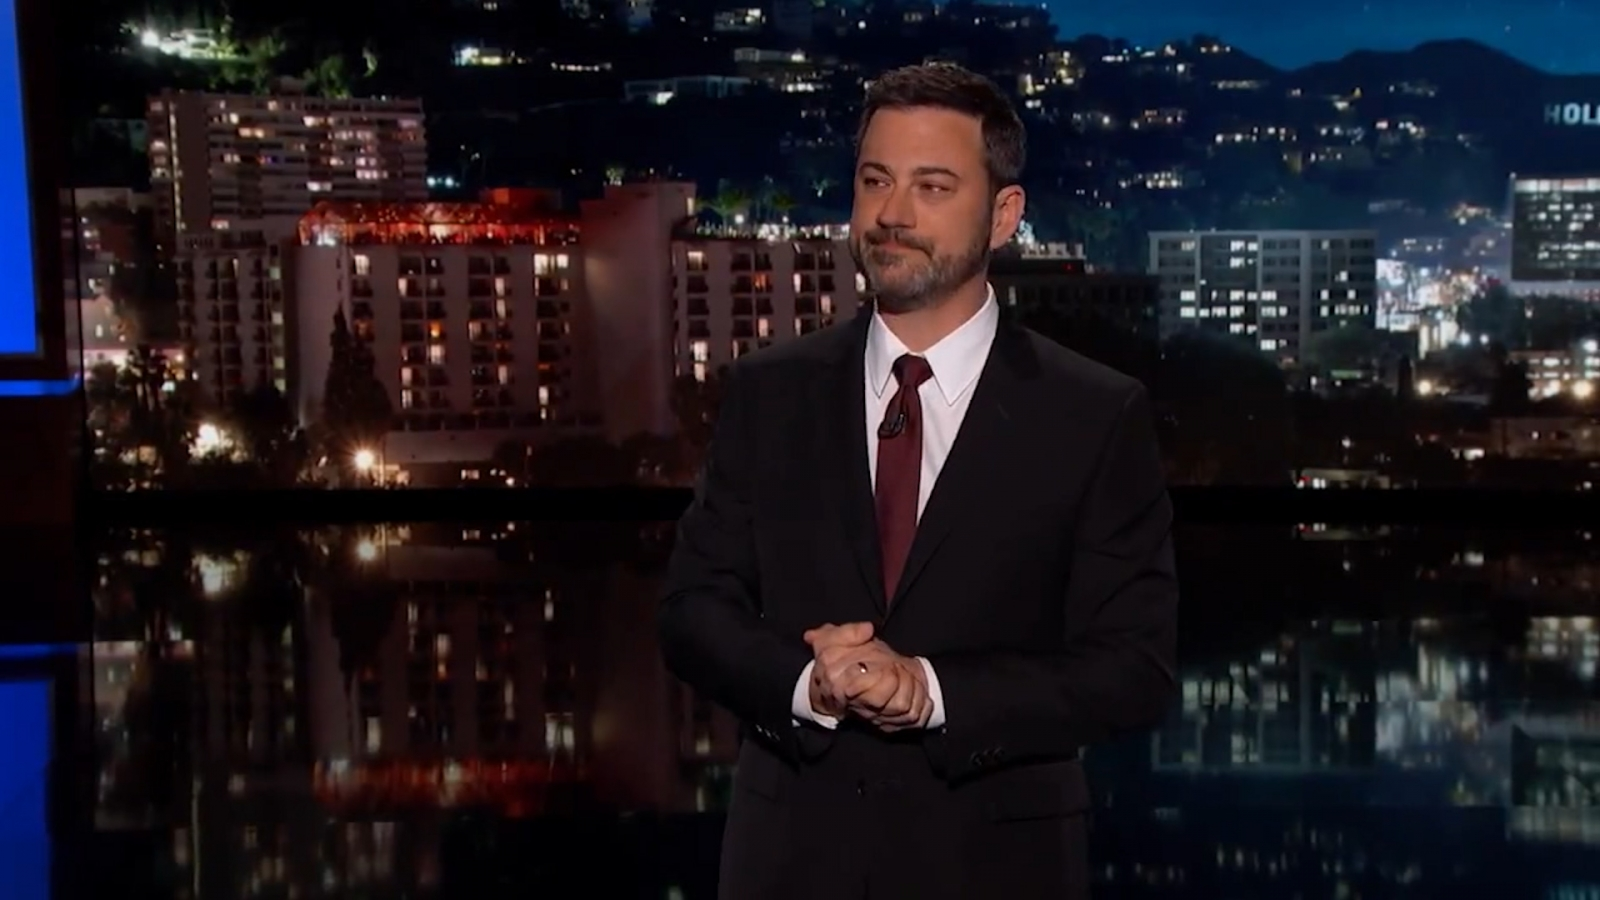 jimmy-kimmel-opens-up-about-newborn-sons-congenital-heart-disease-on-his-show